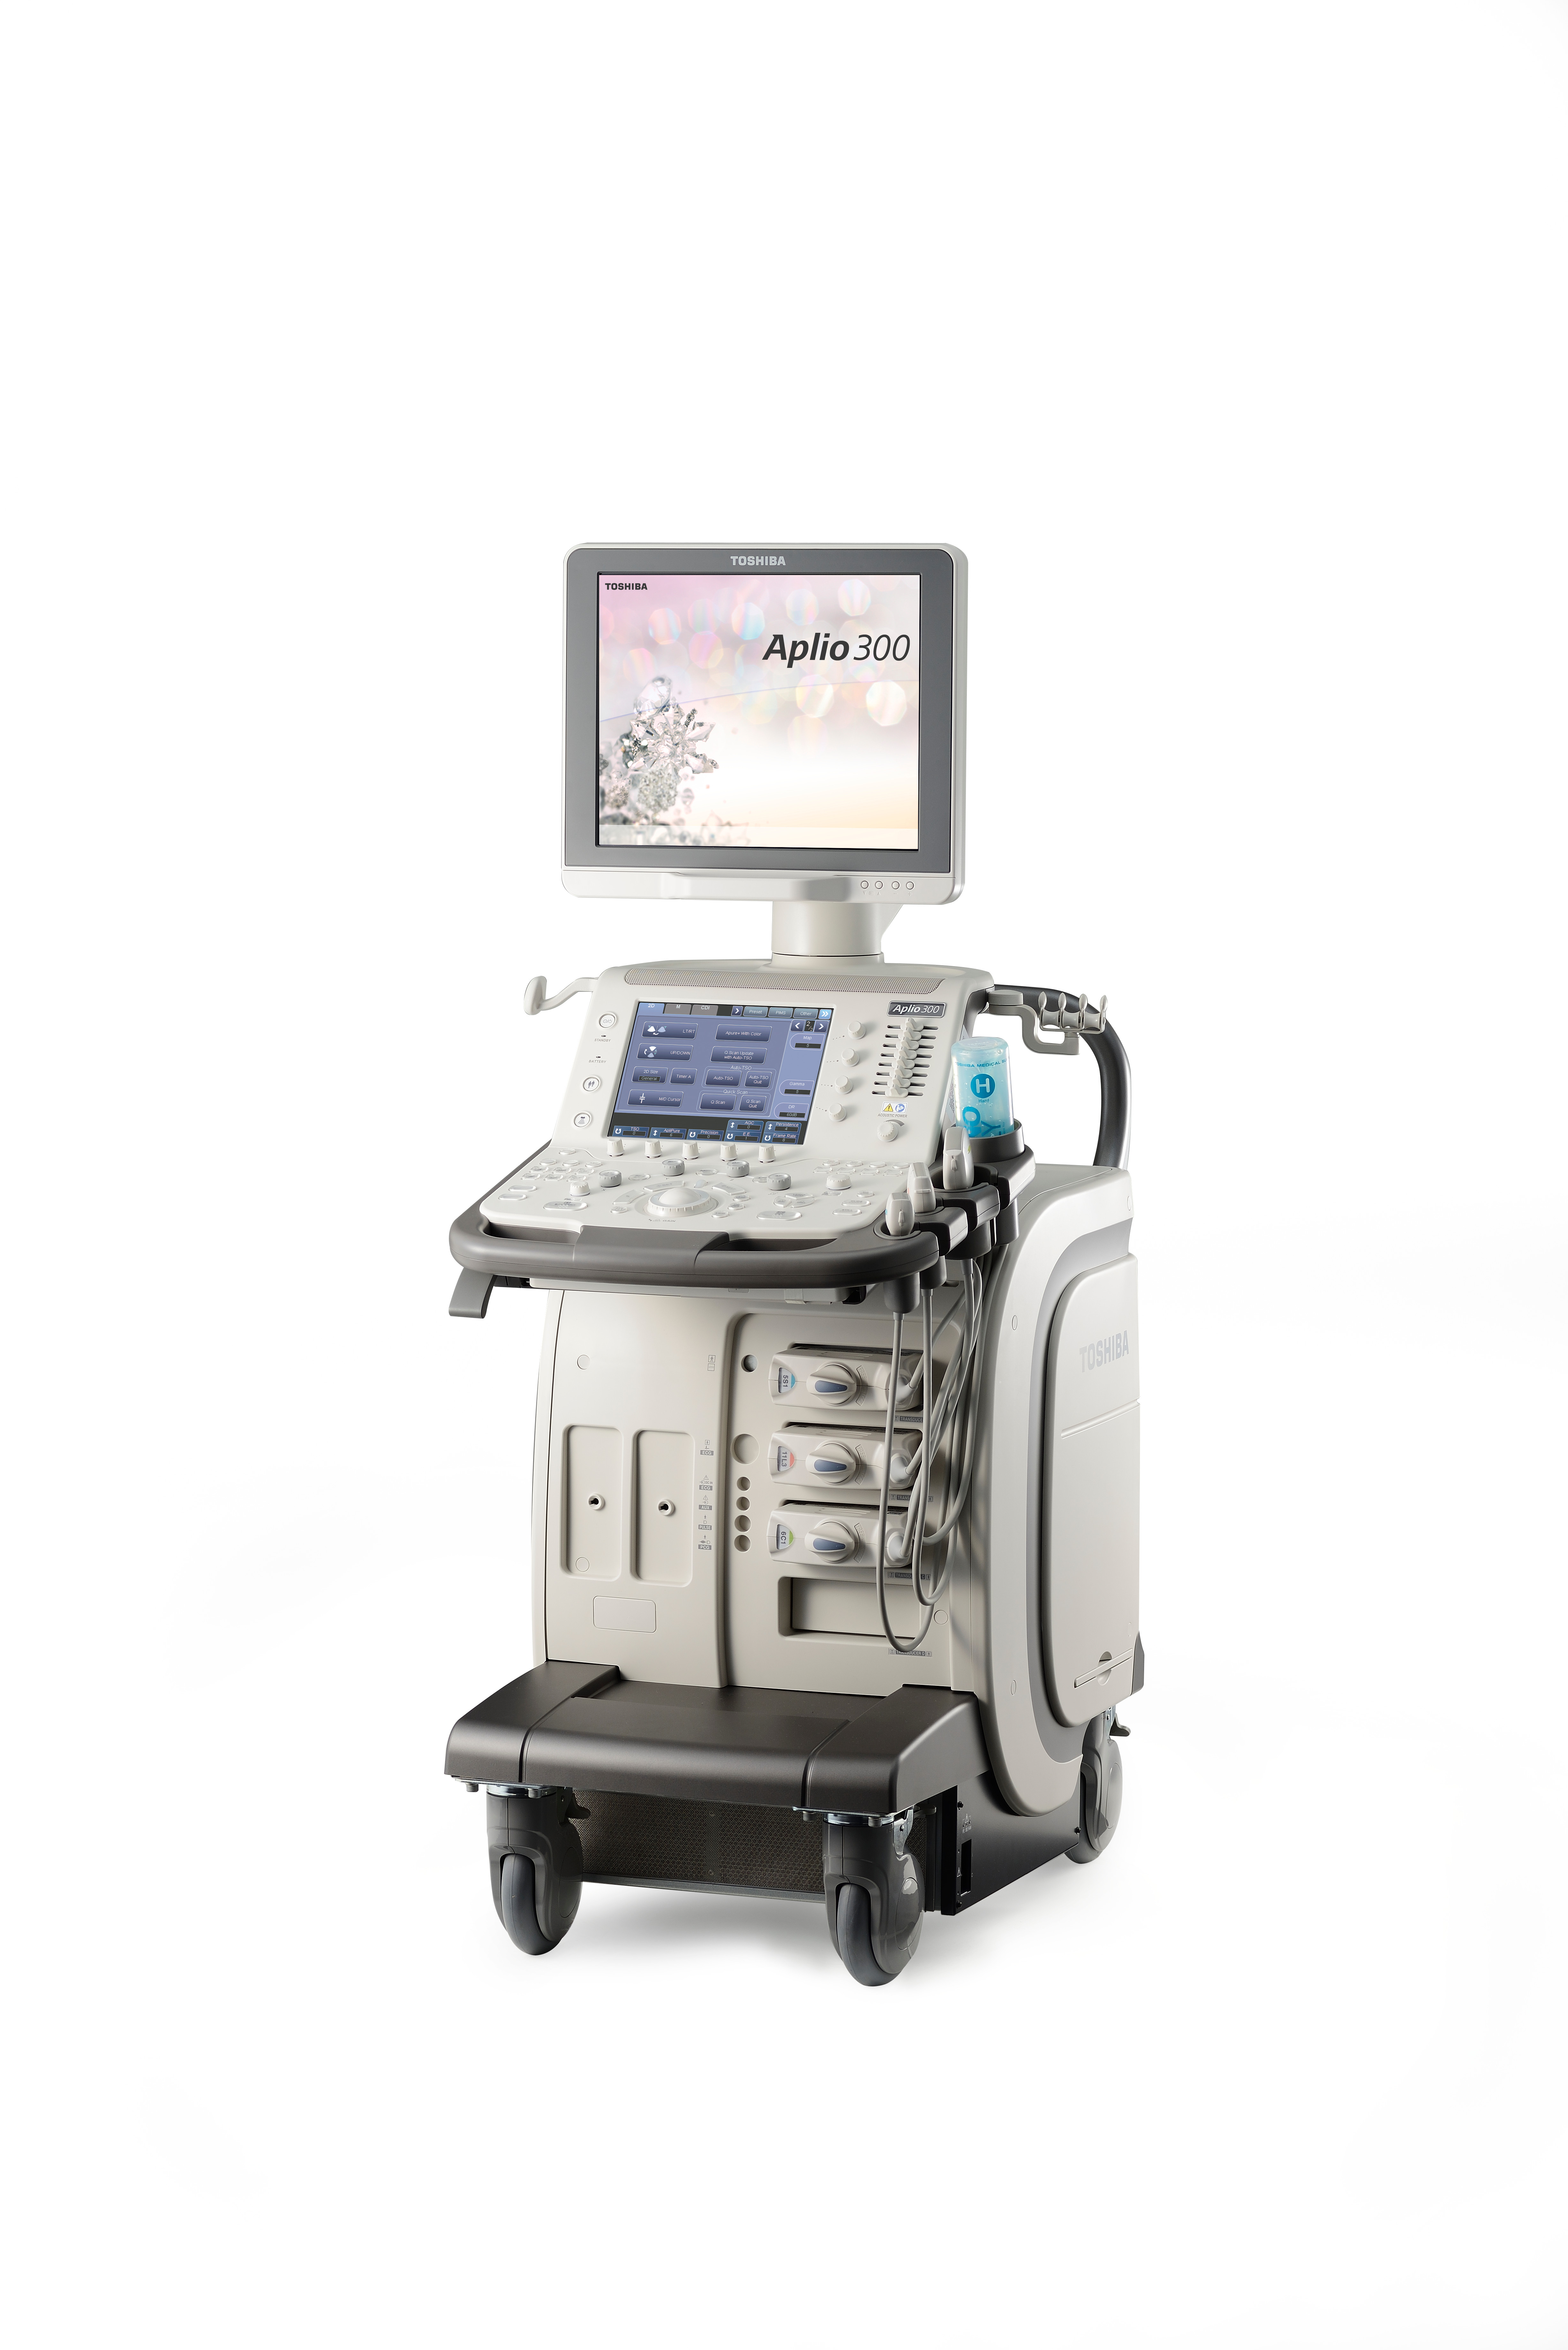 Mercy Hospital Joplin acquired eight Aplio 300 Platinum ultrasound systems for its new facility after a tornado decimated hospital four years ago.